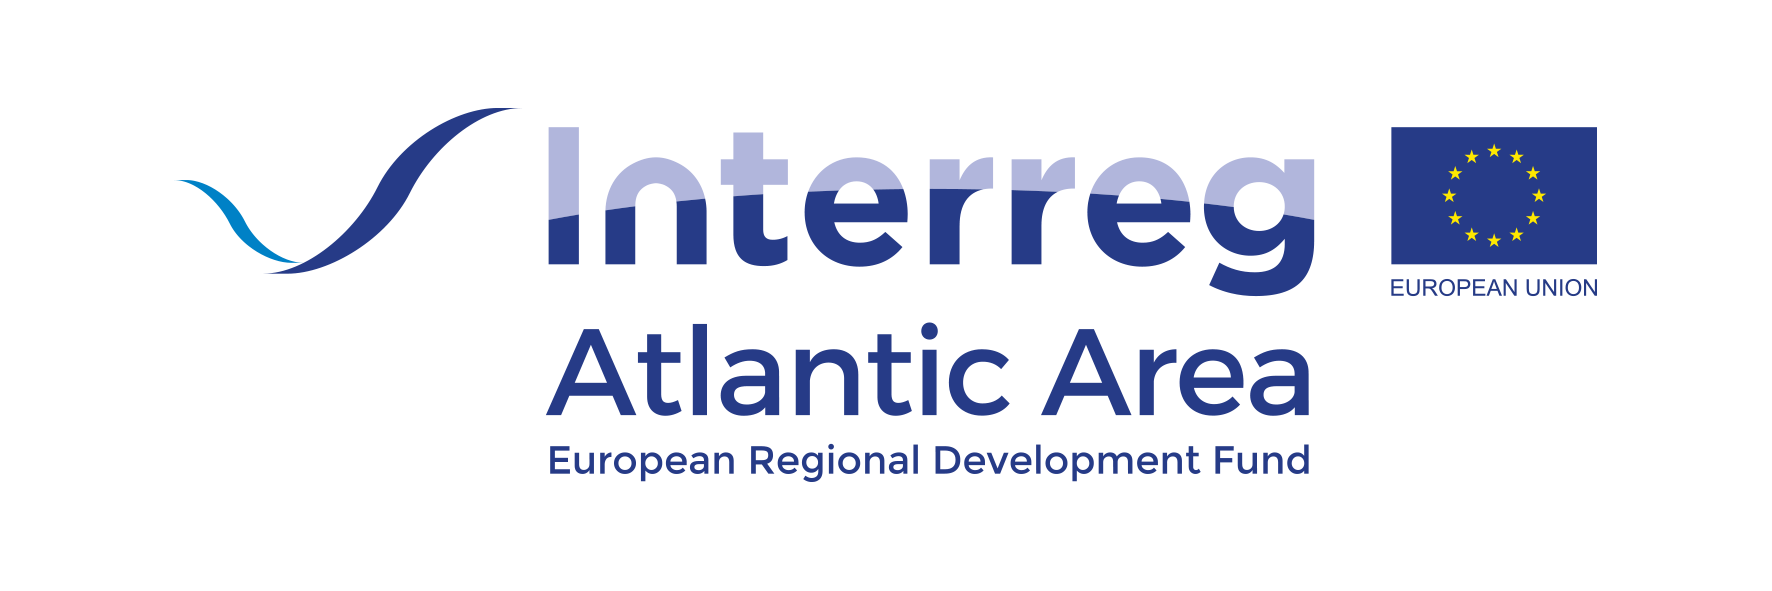 Logos_Interreg-AA_color